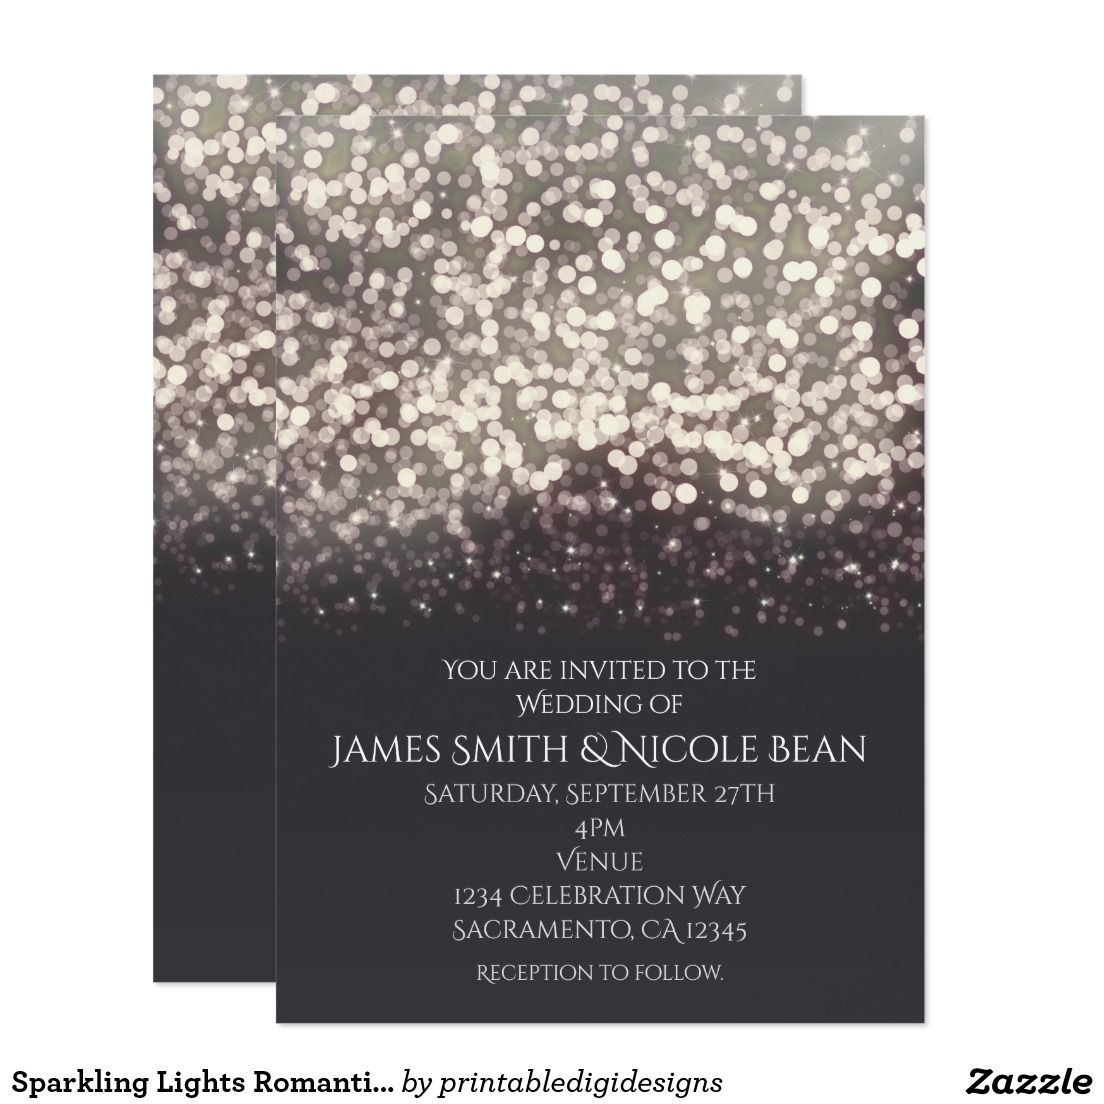 Sparkling Lights Romantic Modern Grey Wedding Card Wedding